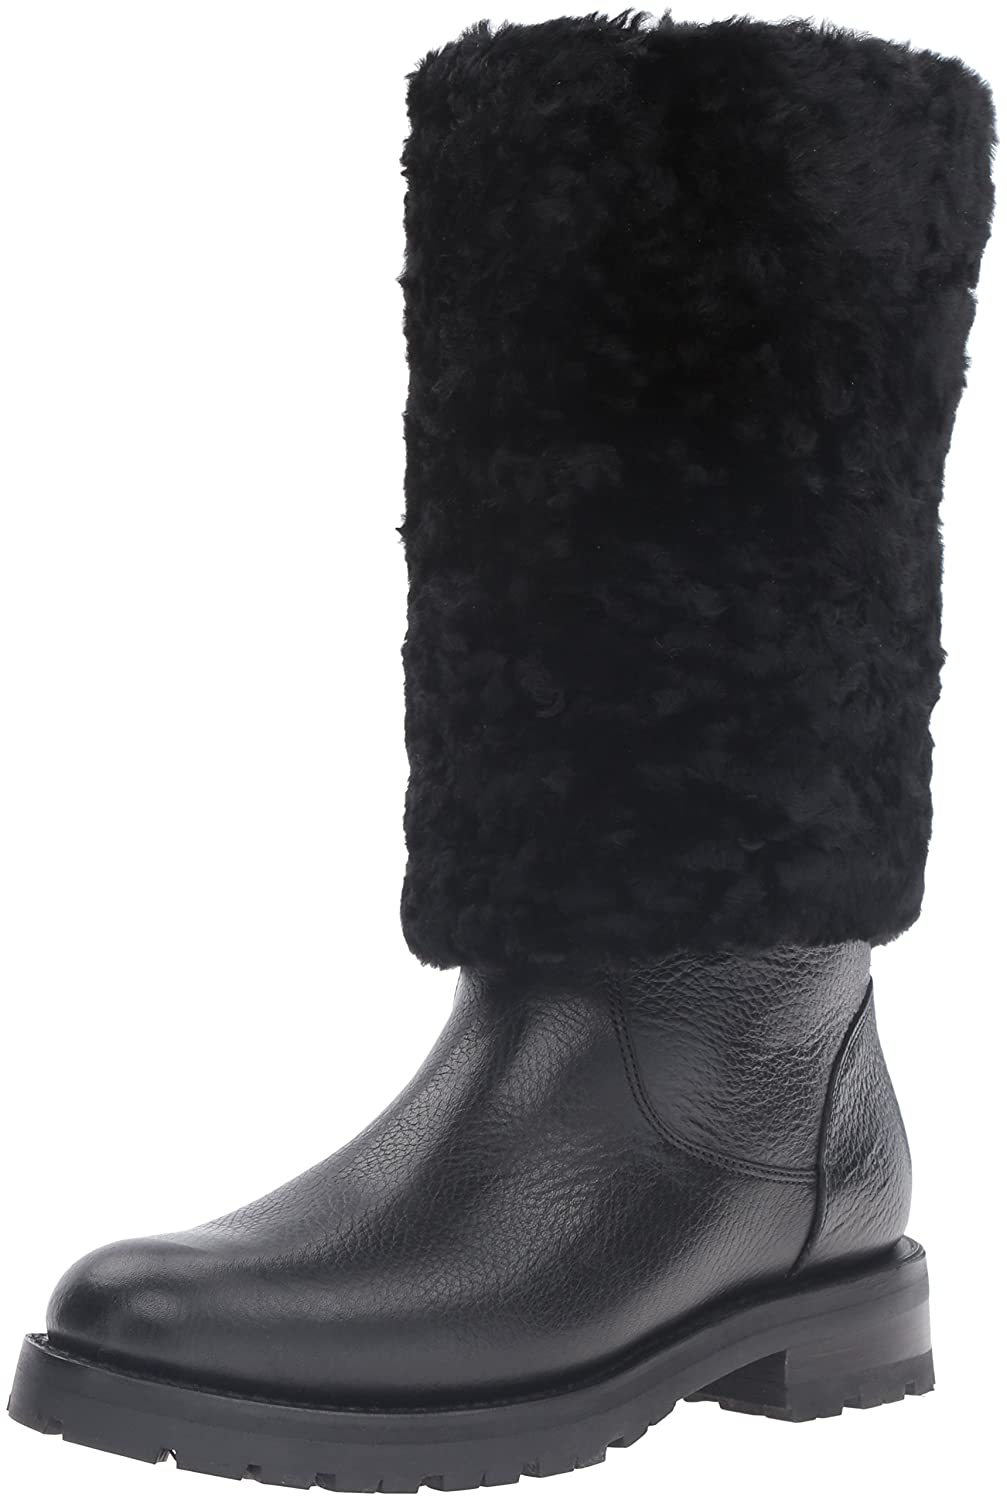 FRYE Women's Natalie Cuff Lug Winter Boot B01BM0NCY2 9 B(M) US|Black